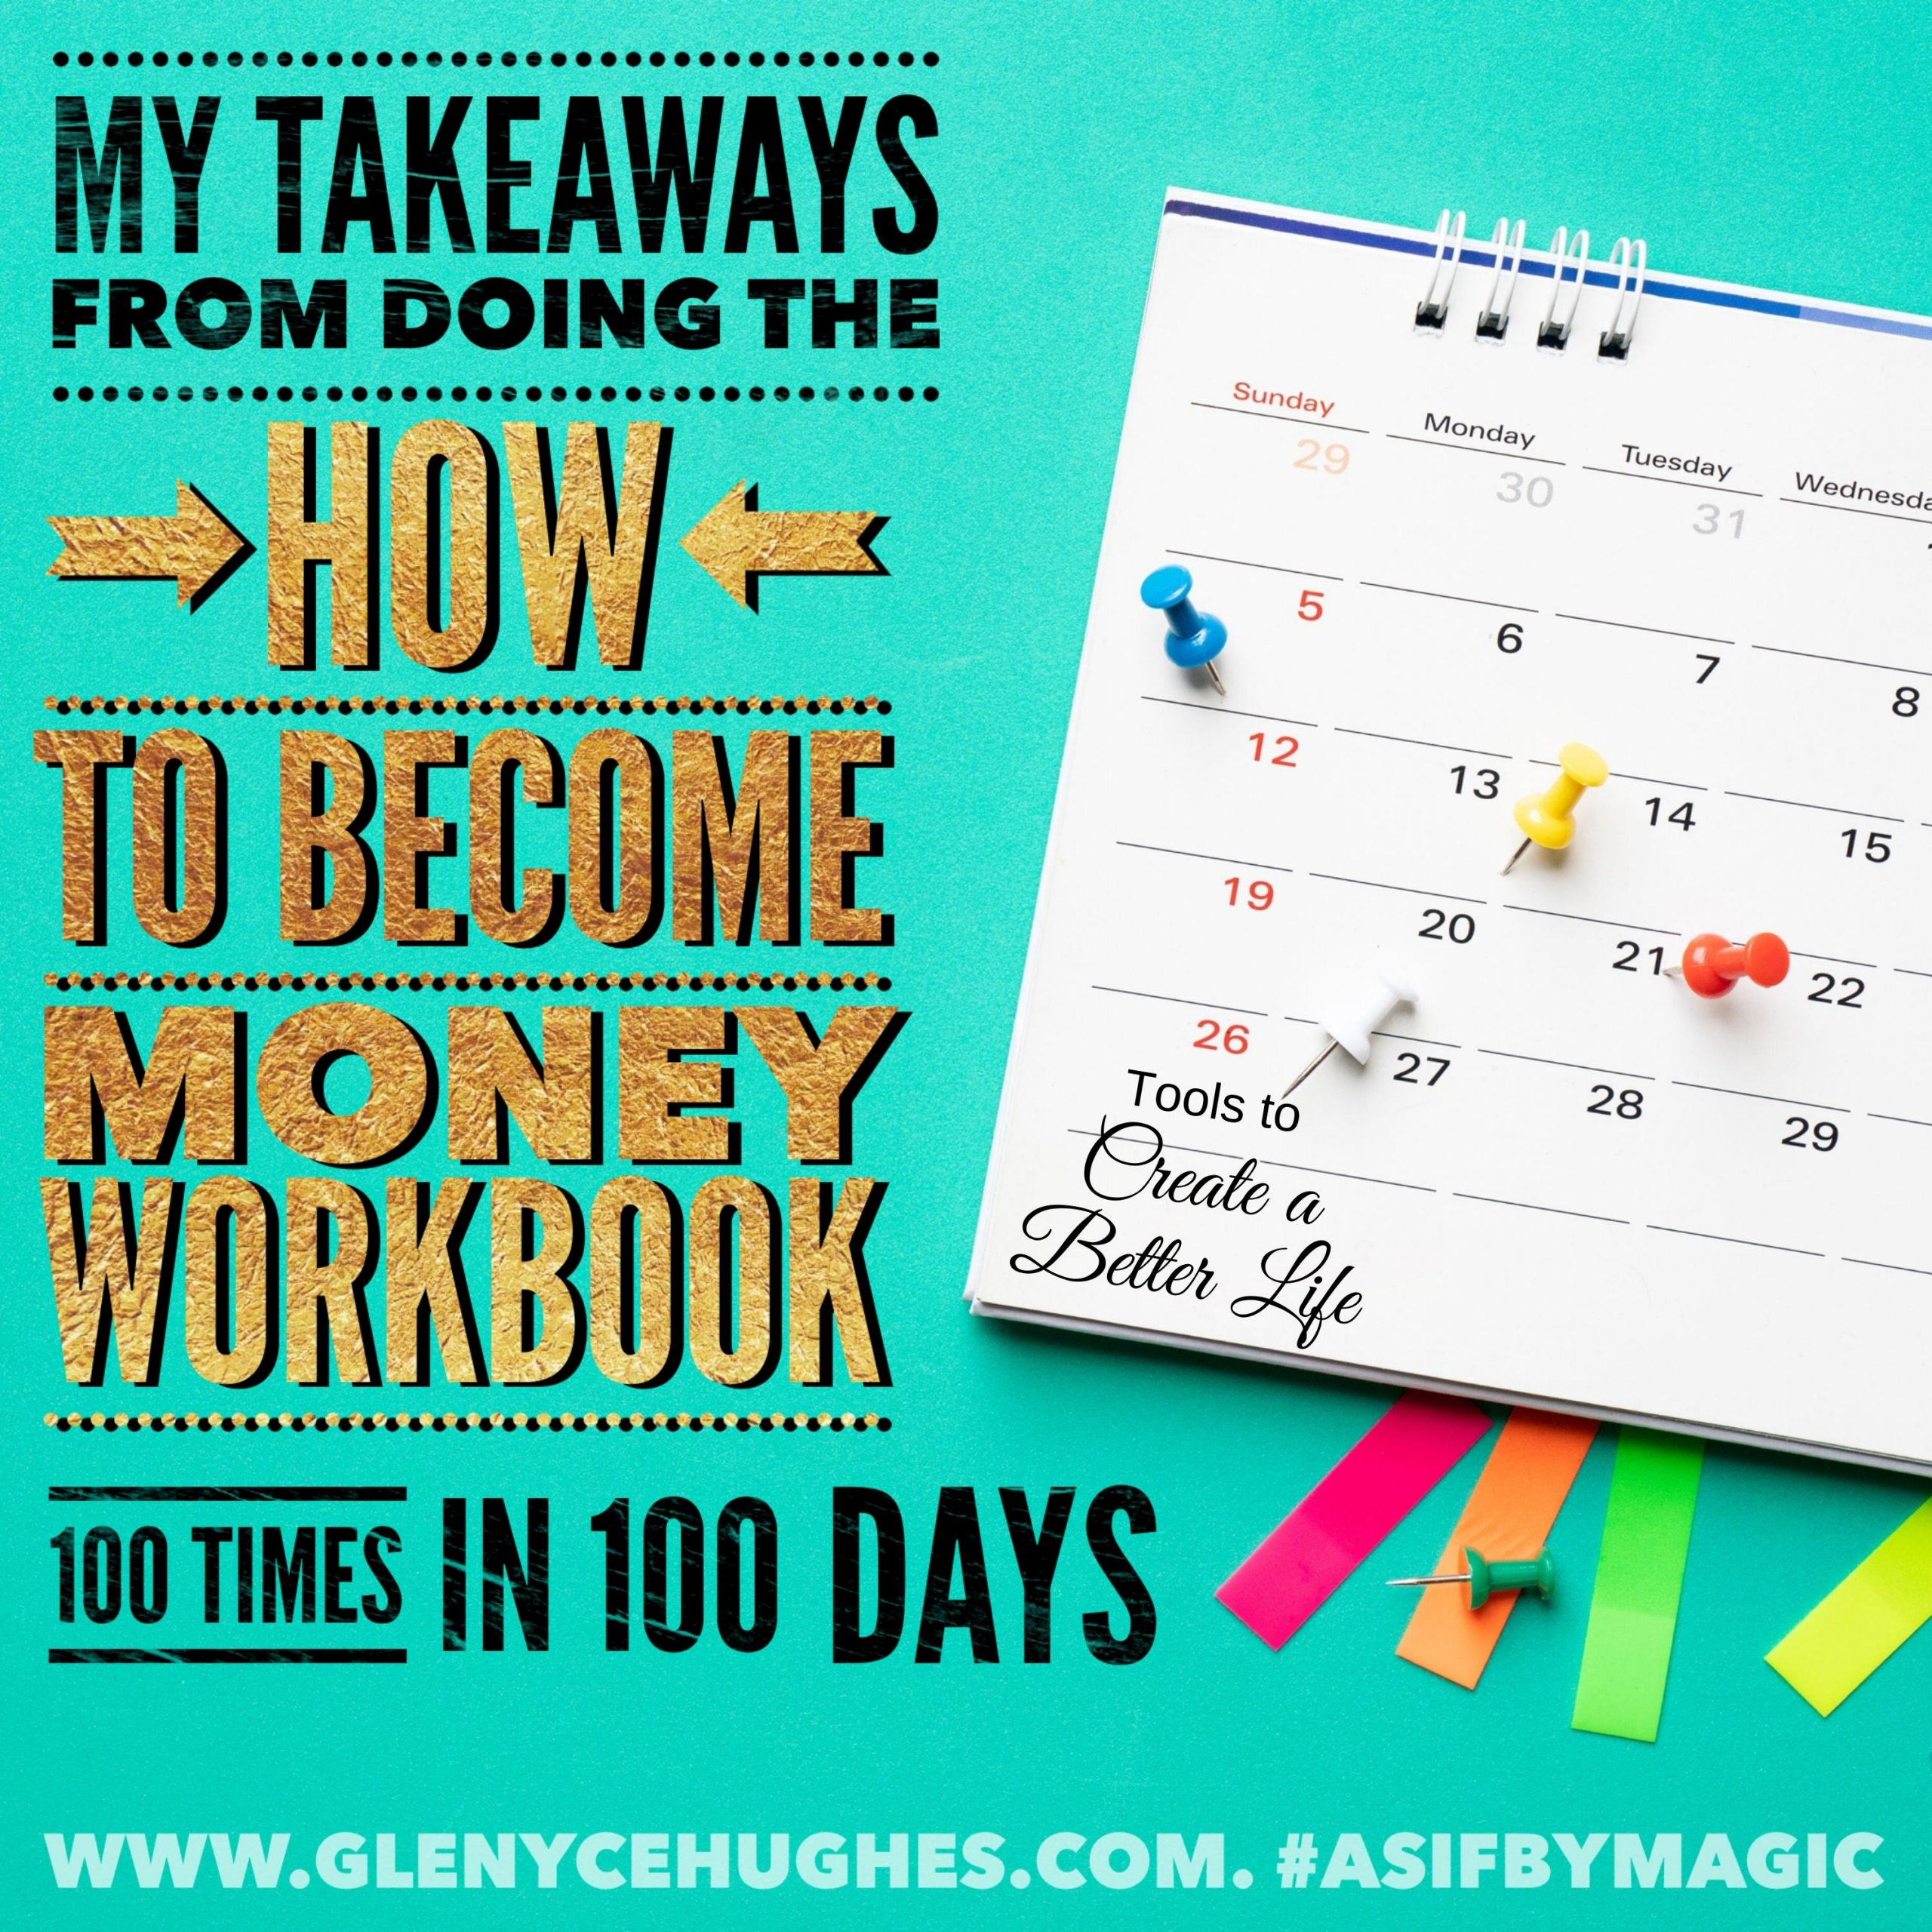 My Takeaways from Doing the How to Become Money Workbook Questions 100 times in 100 Days